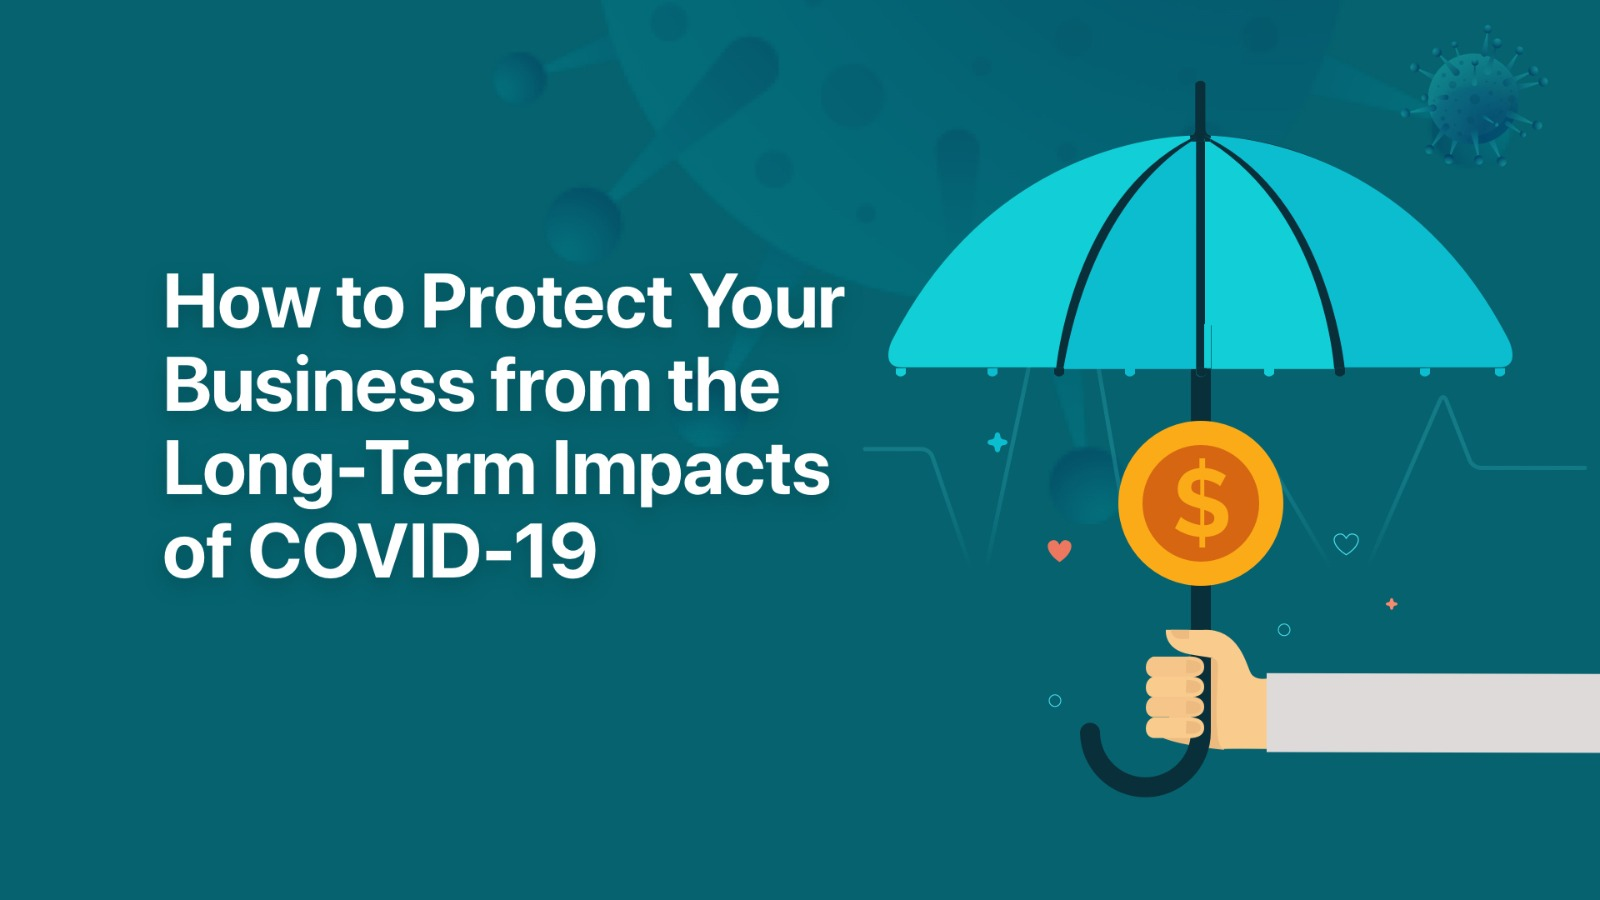 How to Protect Your Business from the Long-Term Impacts of COVID-19